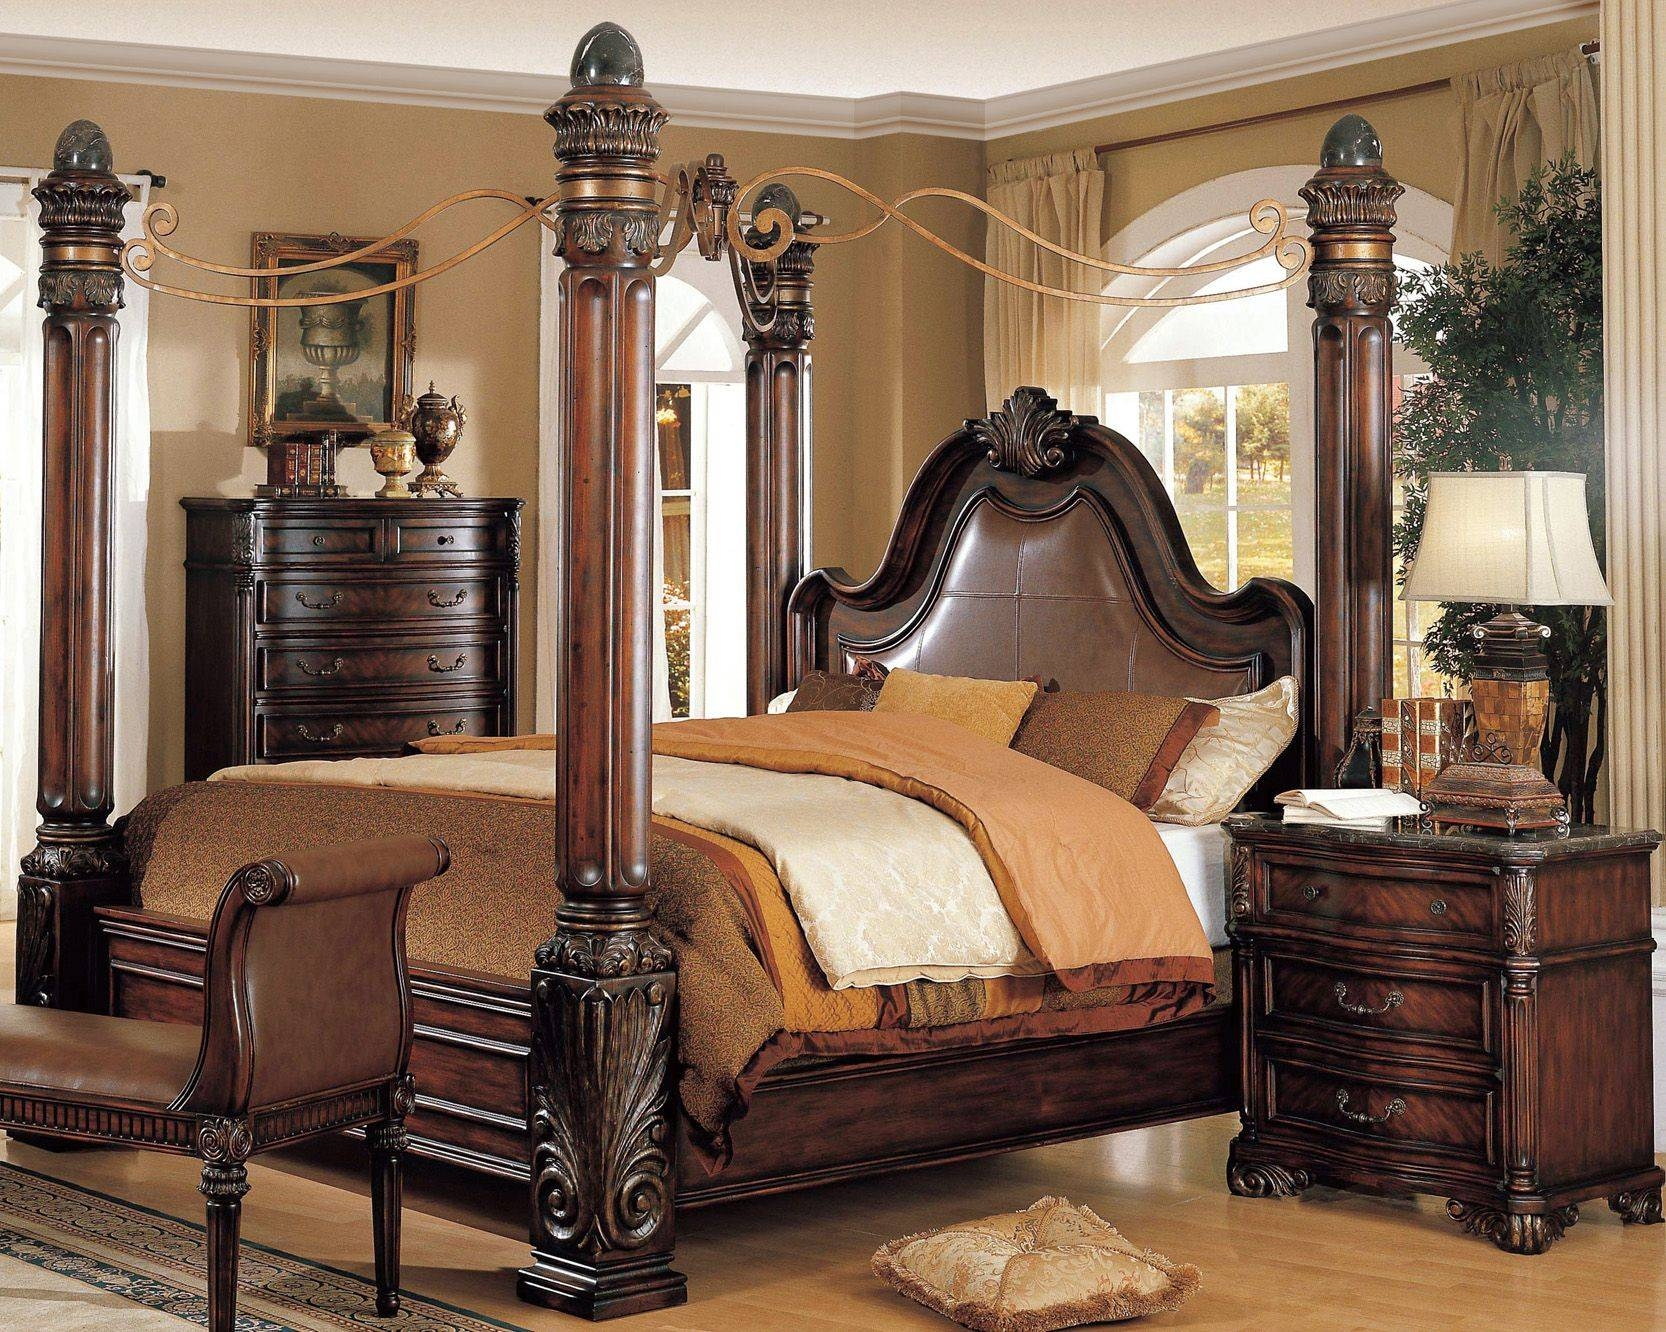 Bed Frames : Canopy Bed Curtains Gothic Style Canopy Bed King within Gothic Style Mirrors (Image 13 of 25)